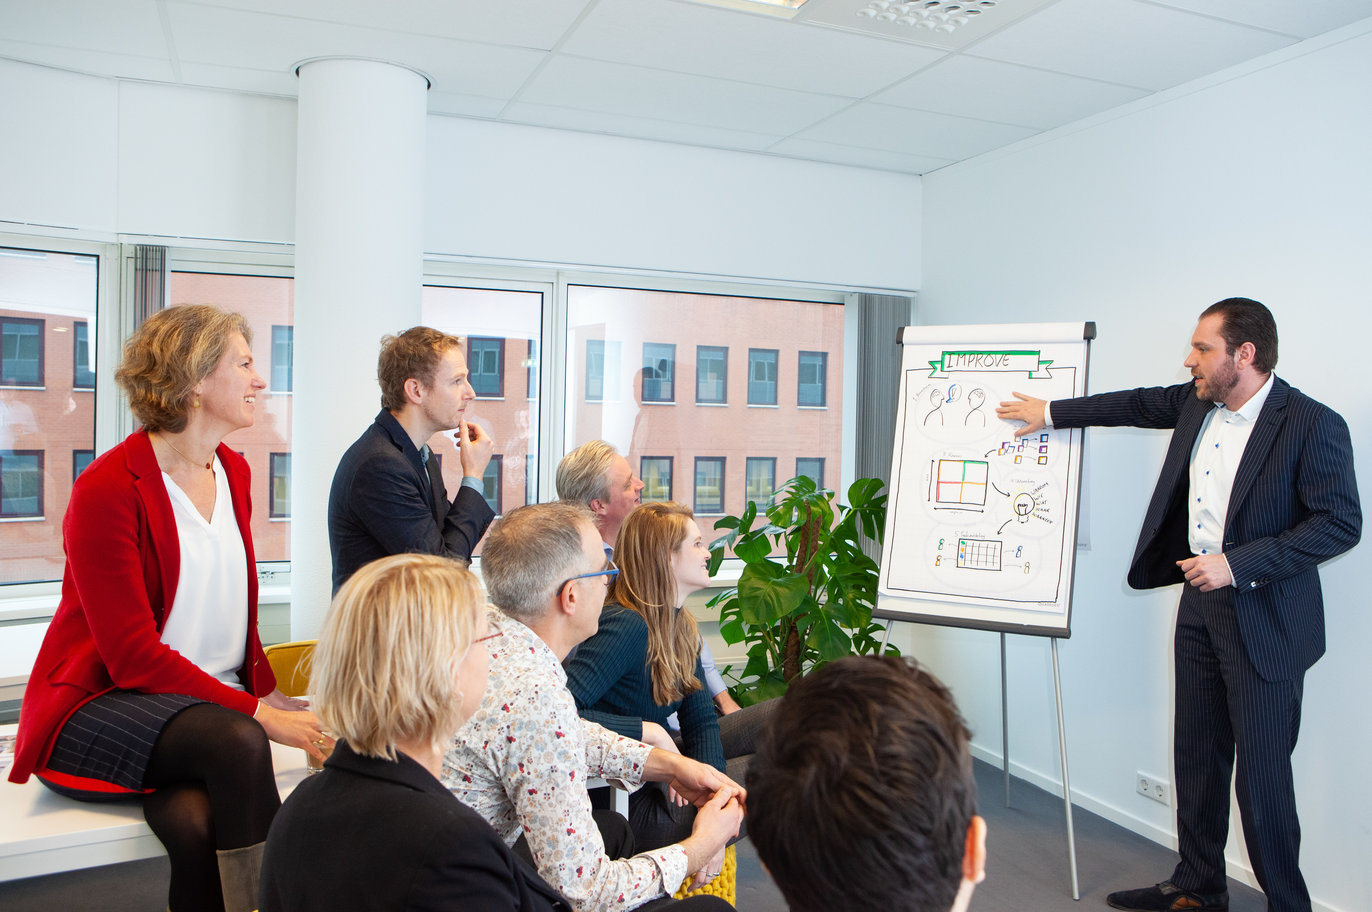 Trainingen door Lean Six Sigma Groep